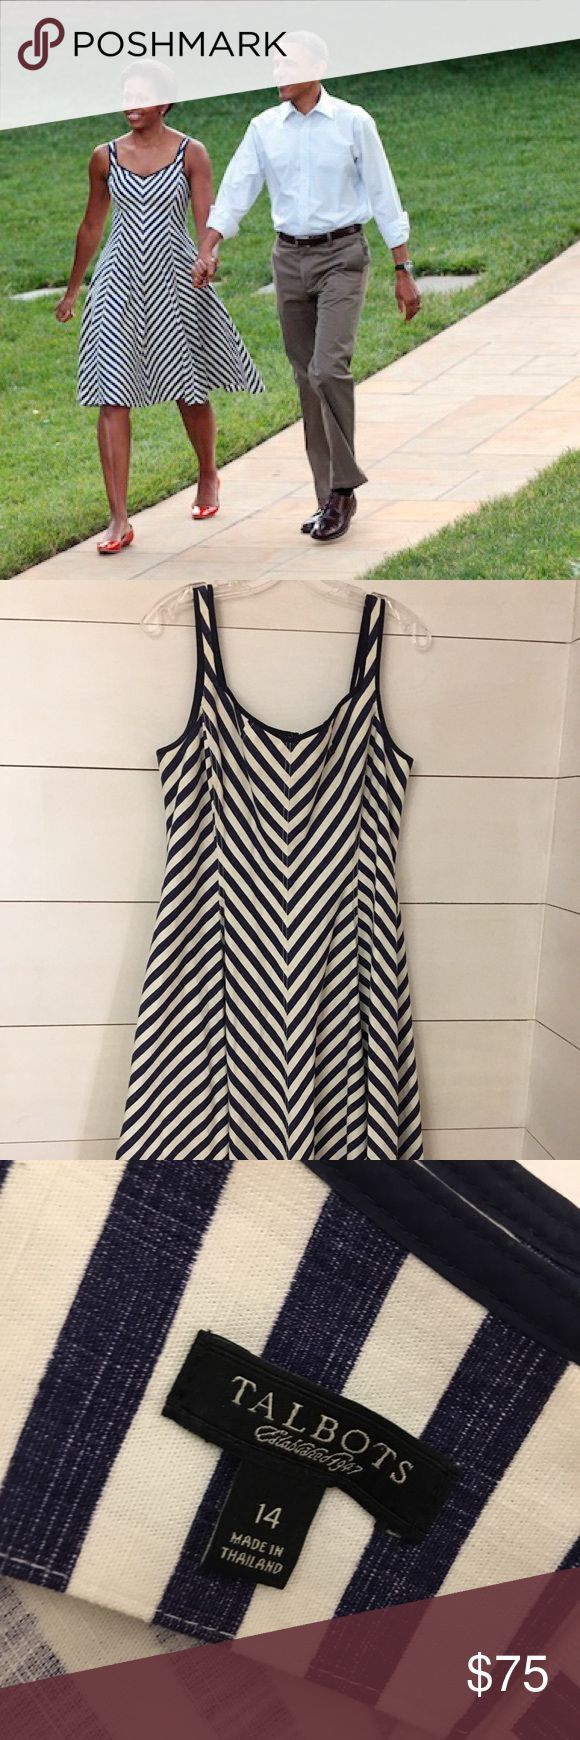 Talbots Shoreline Navy Chevron Striped Dress! Talbots Shoreline Navy Chevron Striped Dress! As seen on Michelle Obama!! Great dress for the spring and summer! It is missing the belt, but it can be worn without (Like Michelle's pic) or add a pop of color with a pretty ribbon or belt! Great condition! Size 14. Talbots Dresses Midi